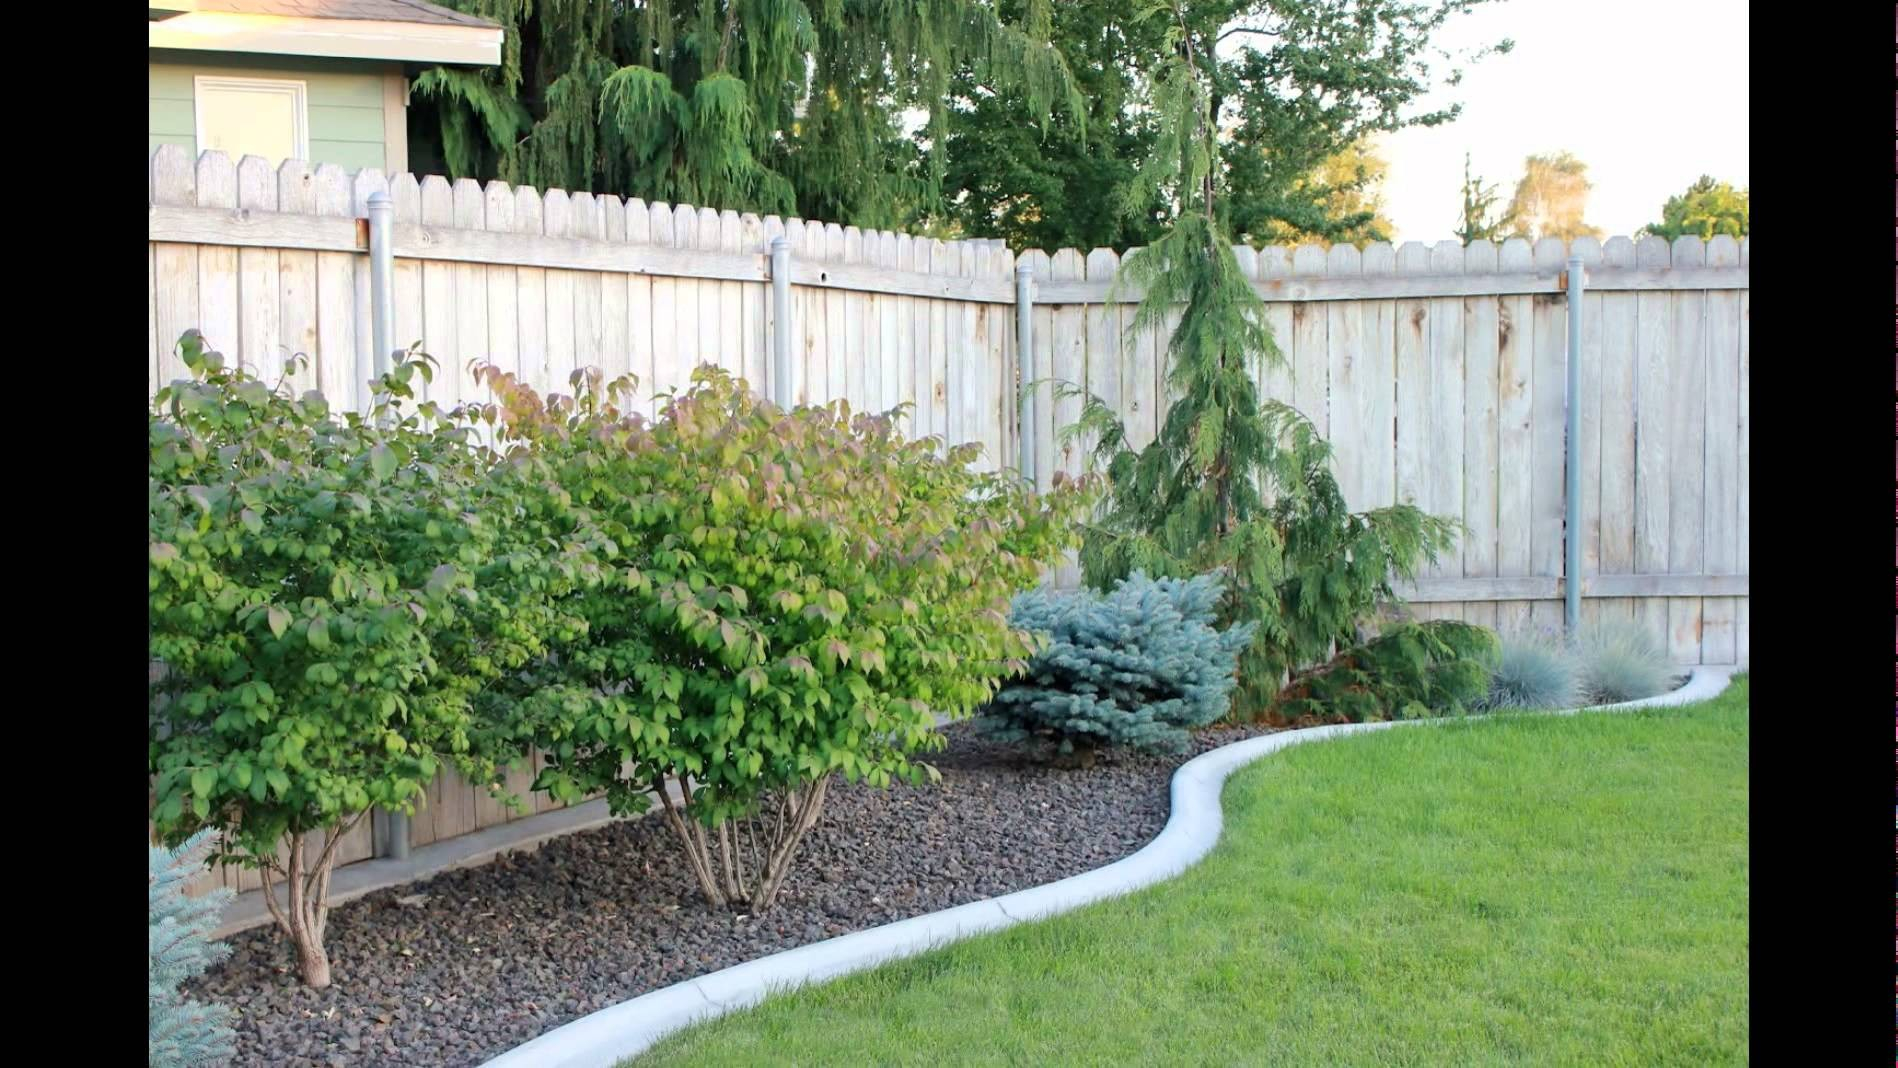 Simple Backyard Landscape Design Landscaping Designs Small in Simple Backyard Landscape Design